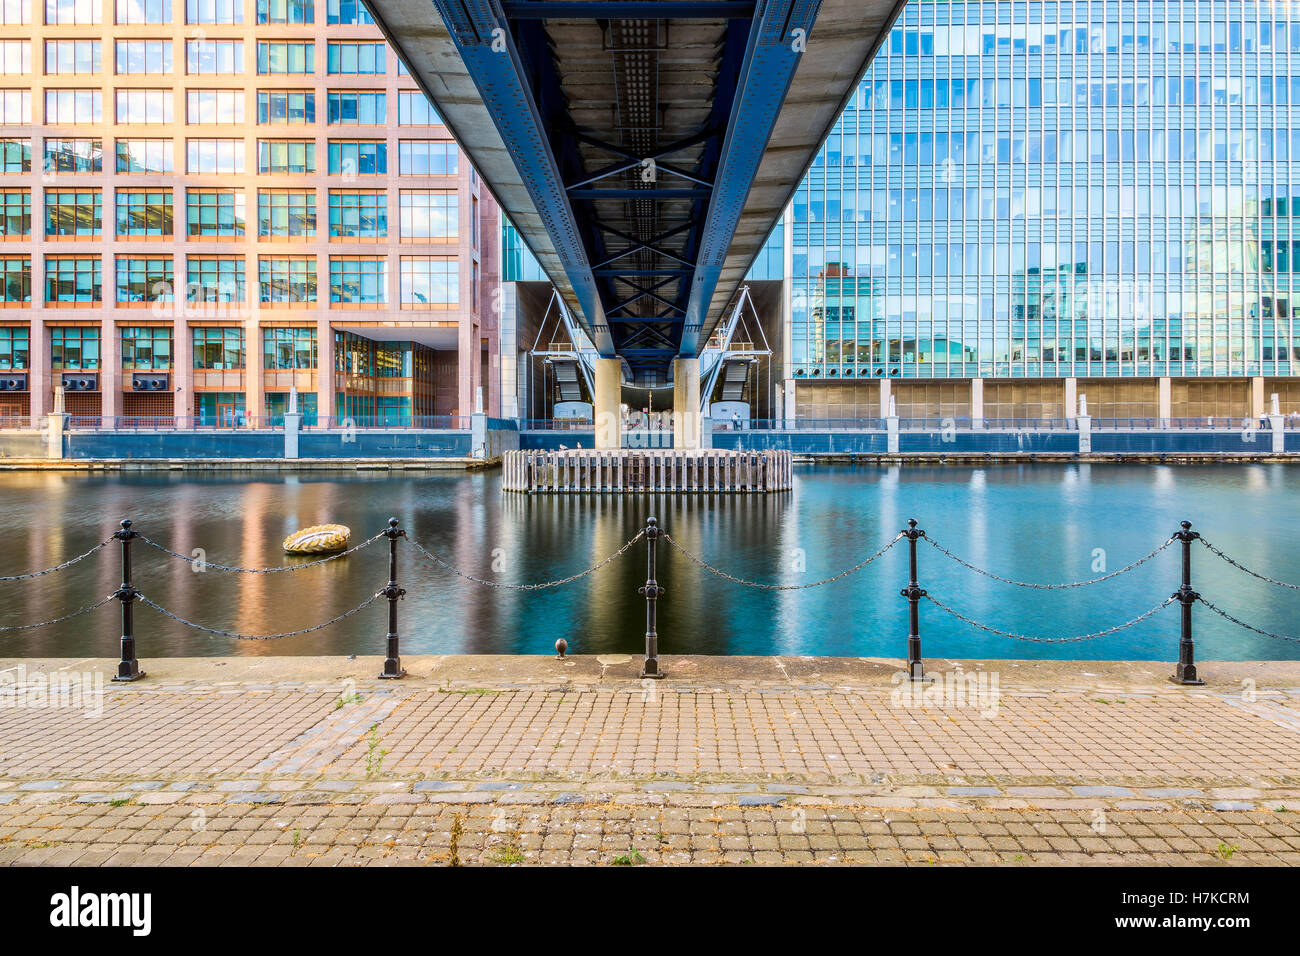 South Dock of Canary Wharf under Docklands Light Railway - Stock Image